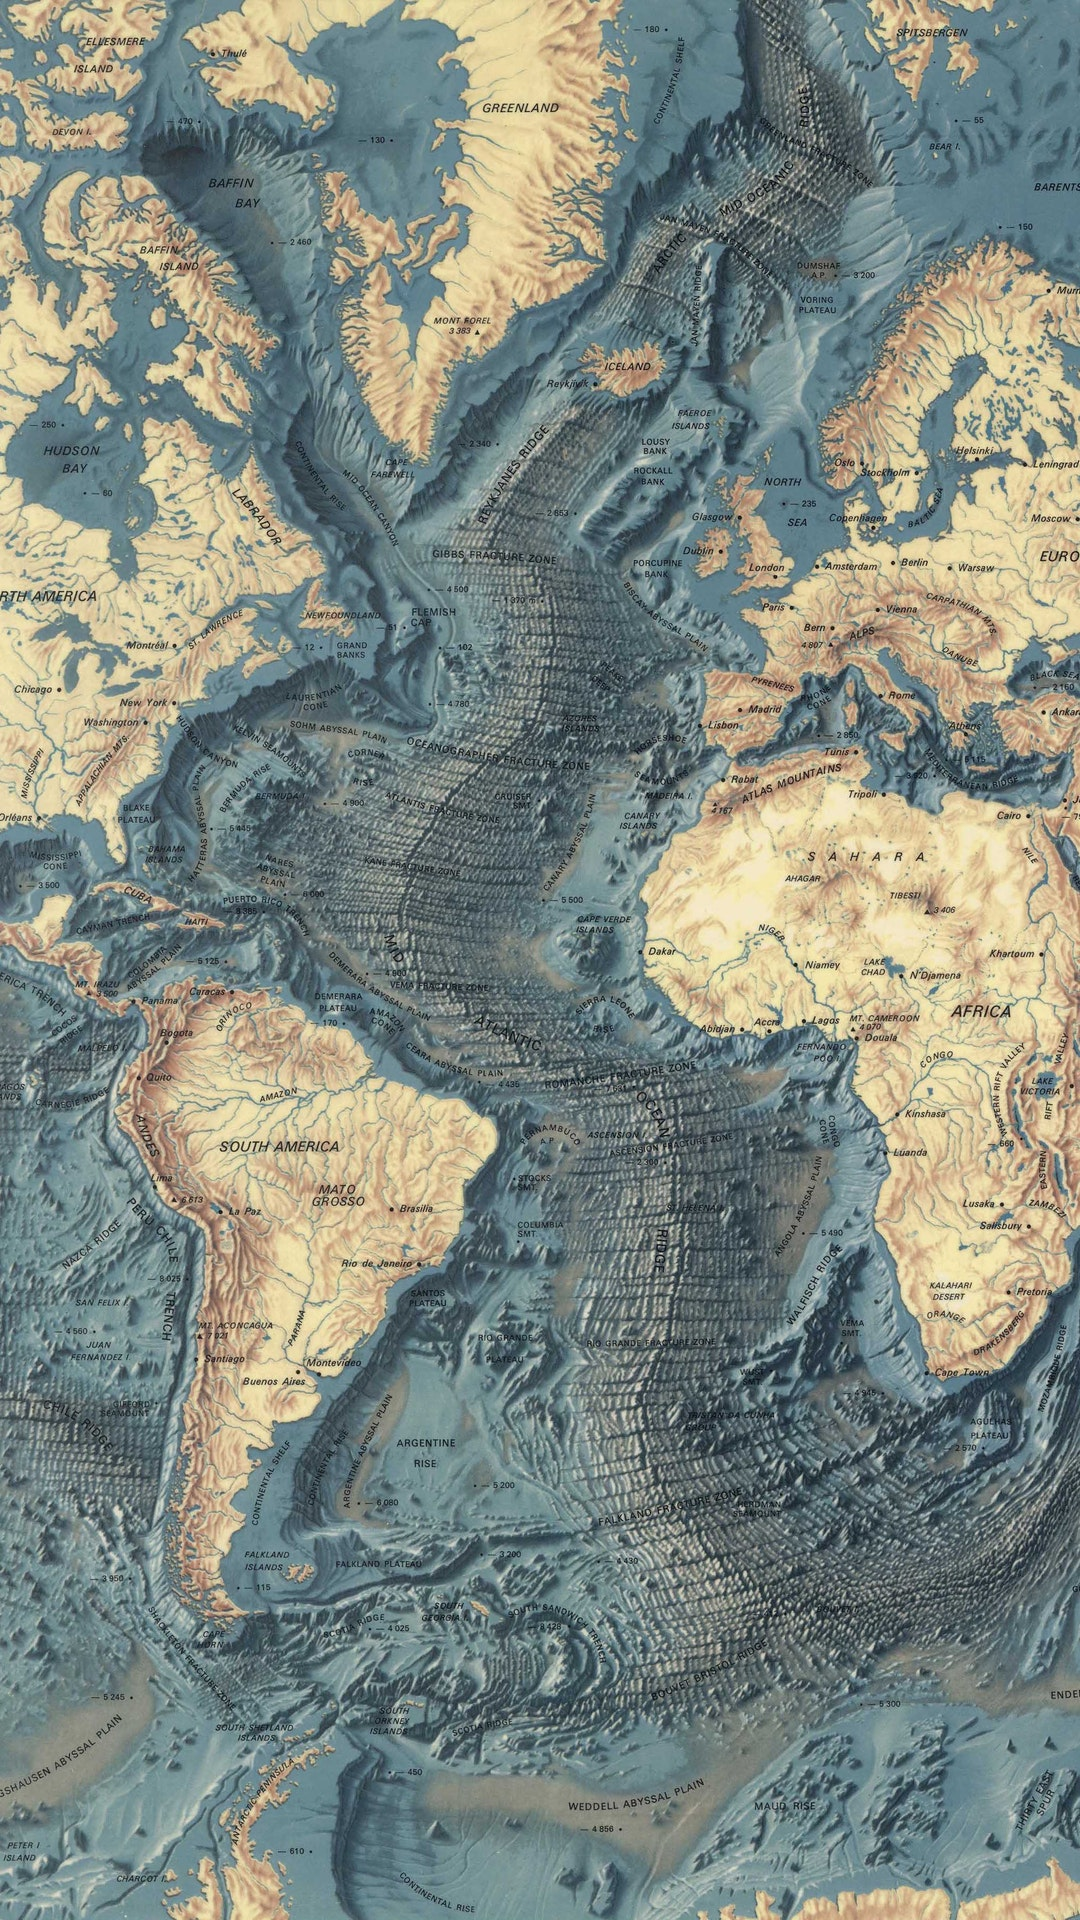 World ocean floor map by bruce heezen marie tharp electric objects gumiabroncs Choice Image